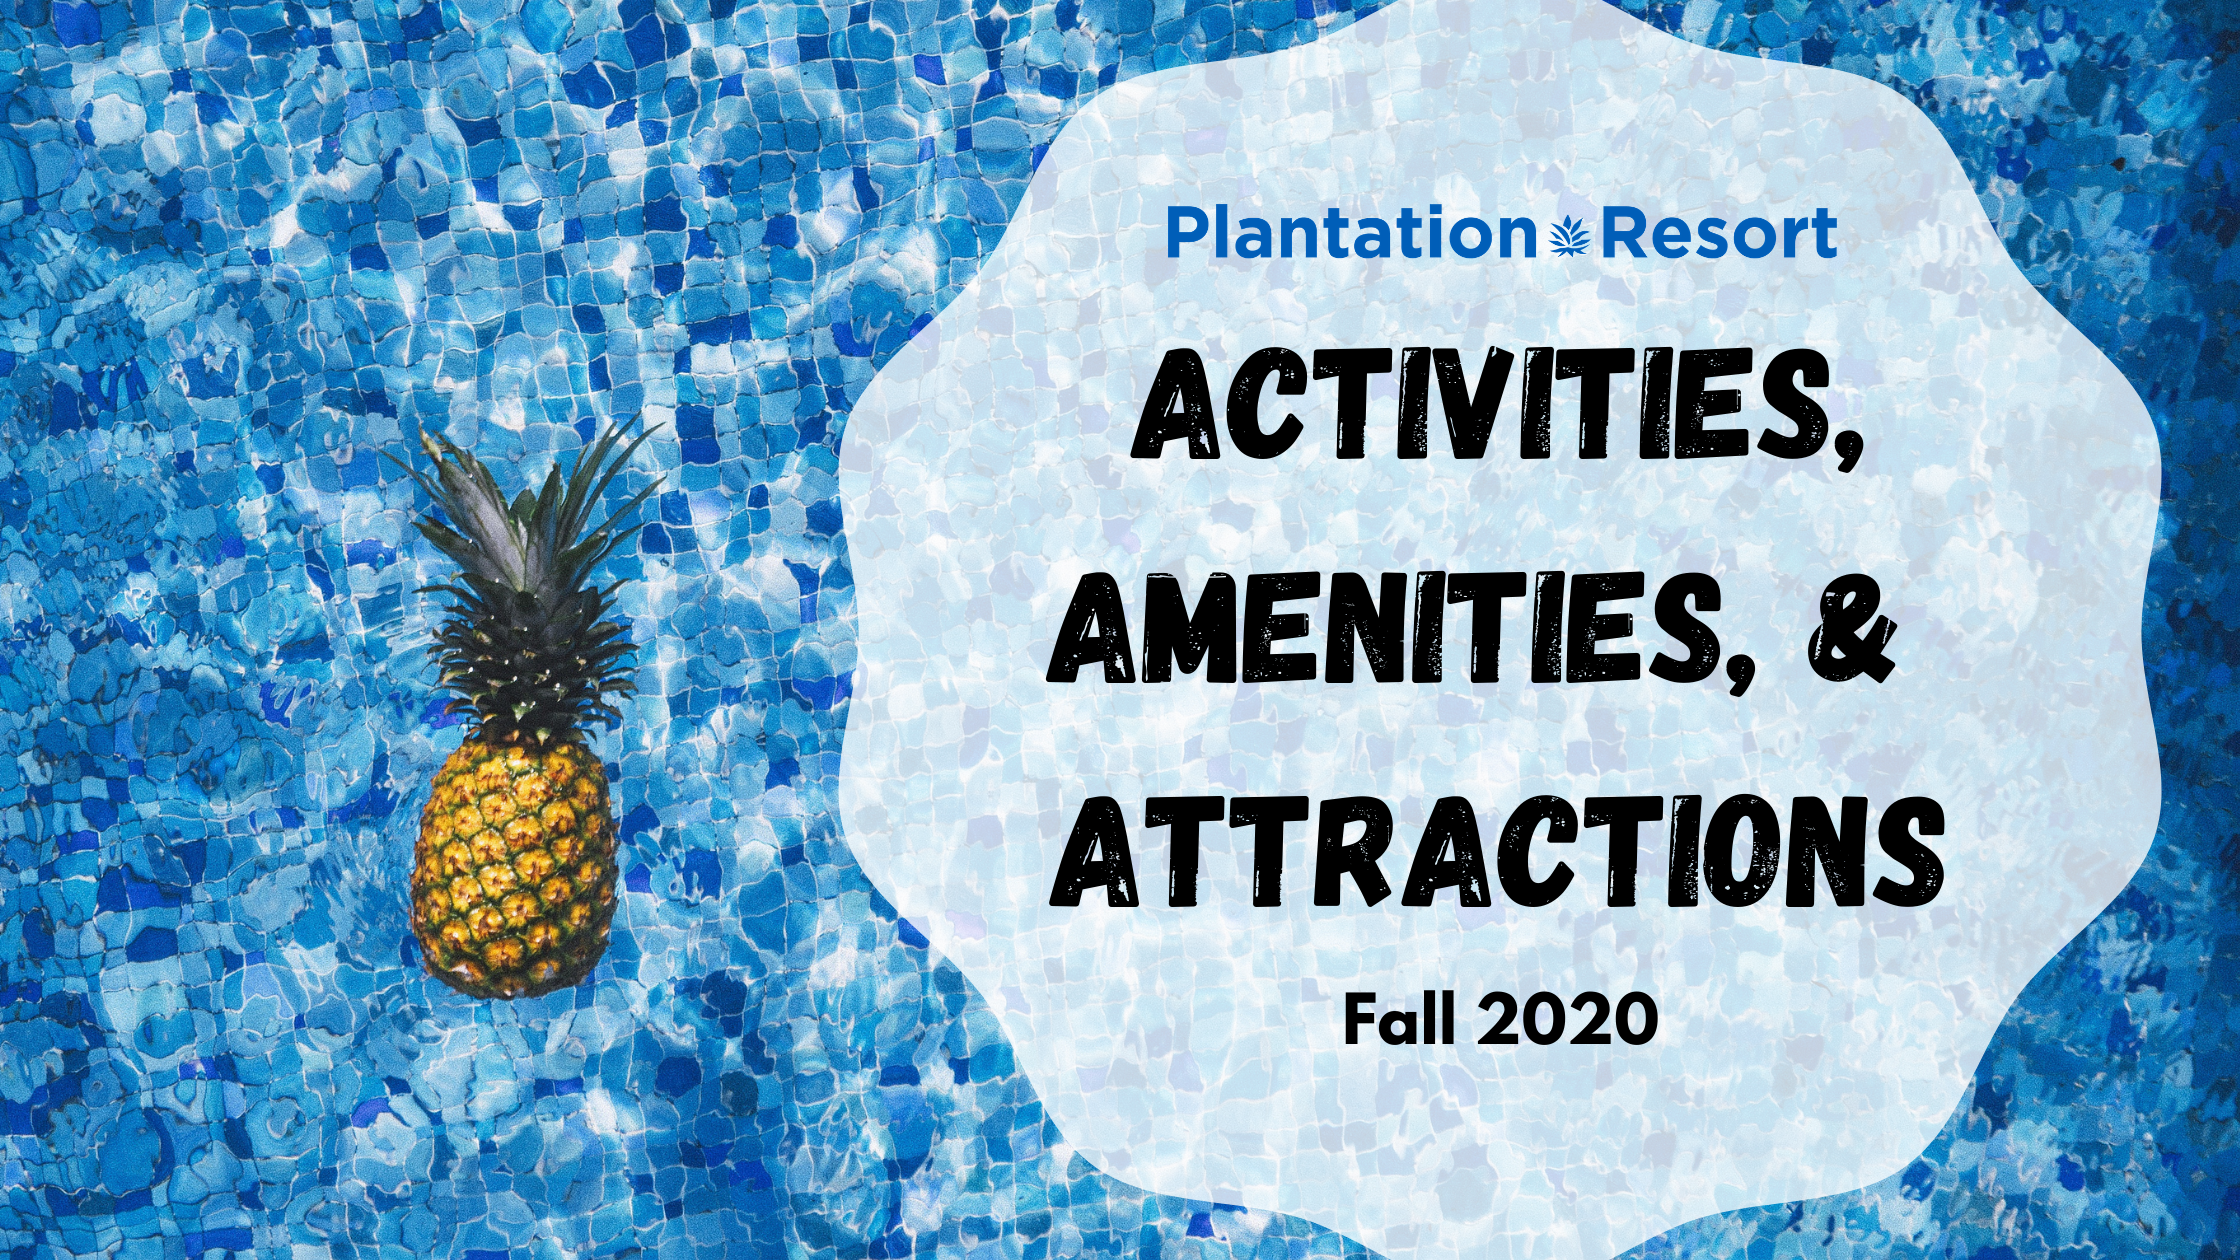 Enjoy the activities, amenities, and attractions of Plantation Resort at Myrtle Beach